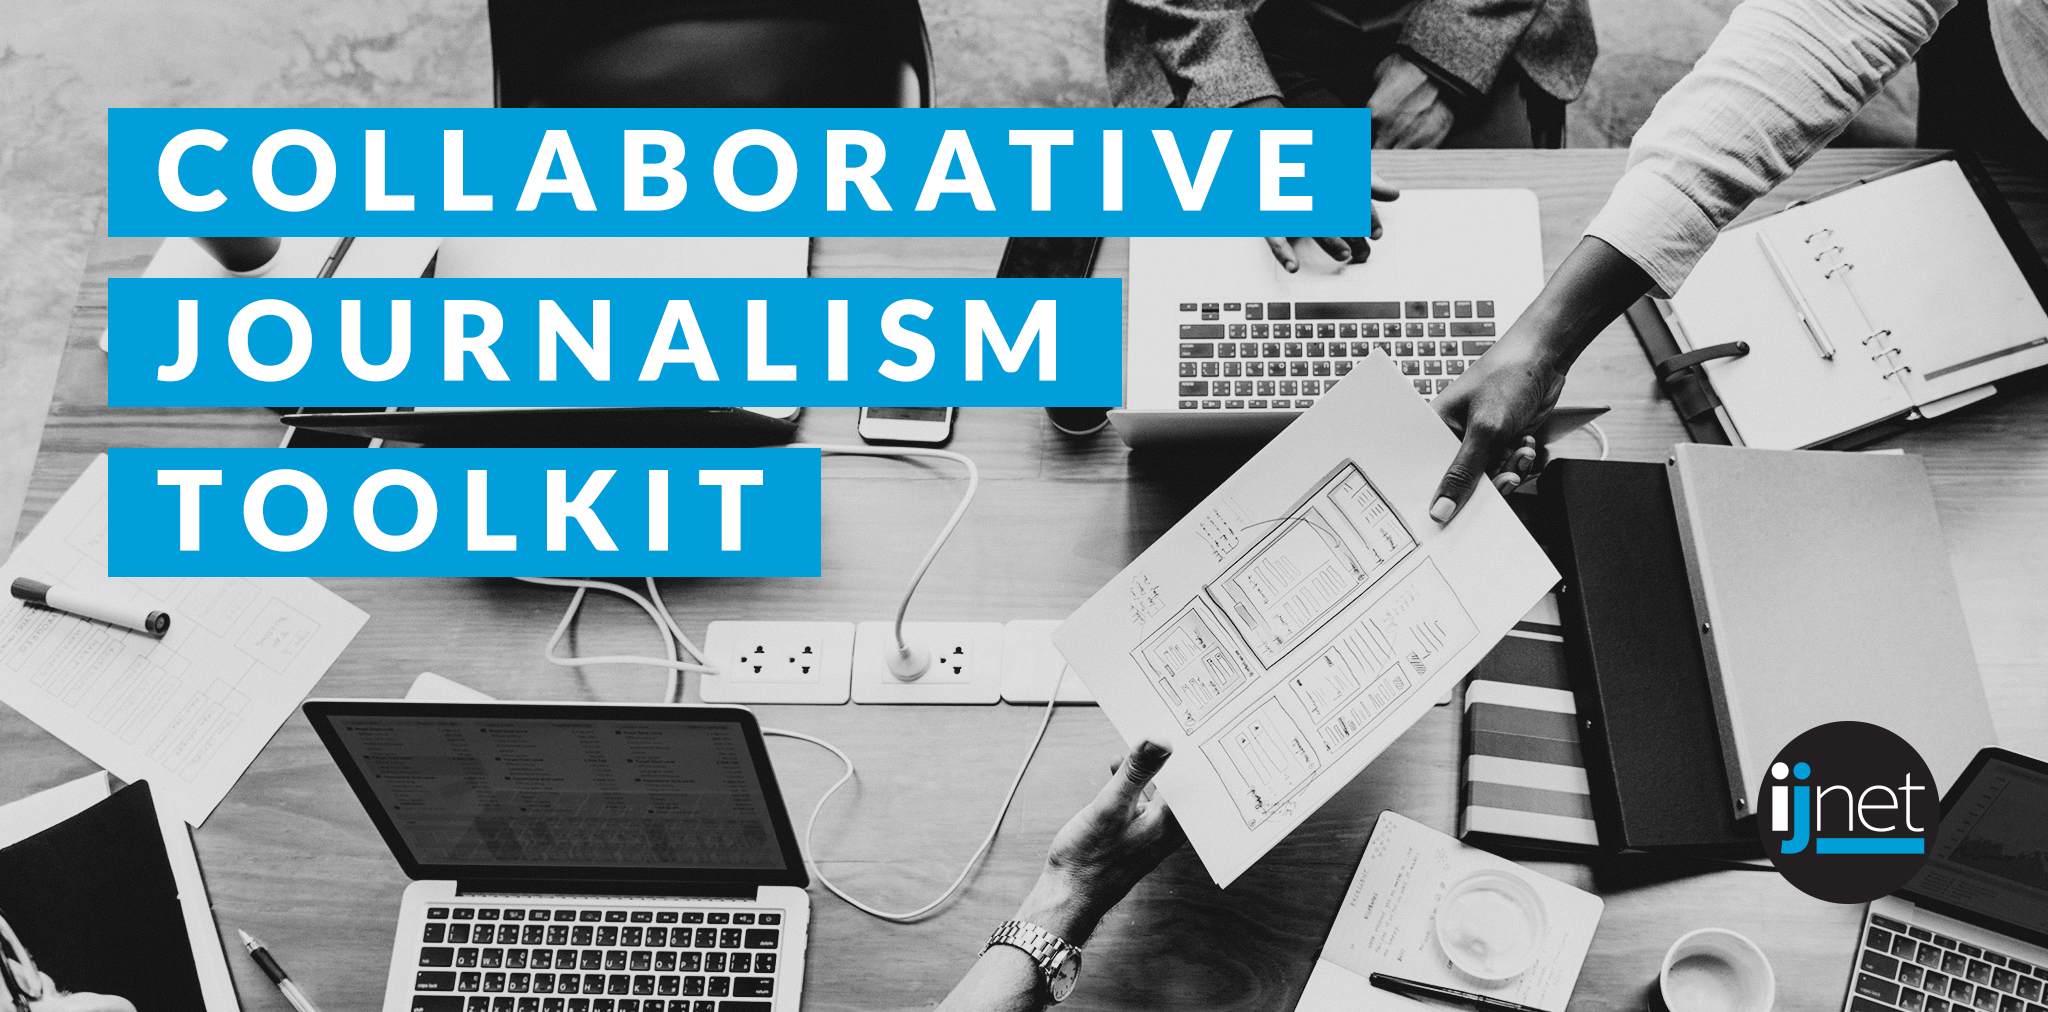 Collaborative journalism toolkit